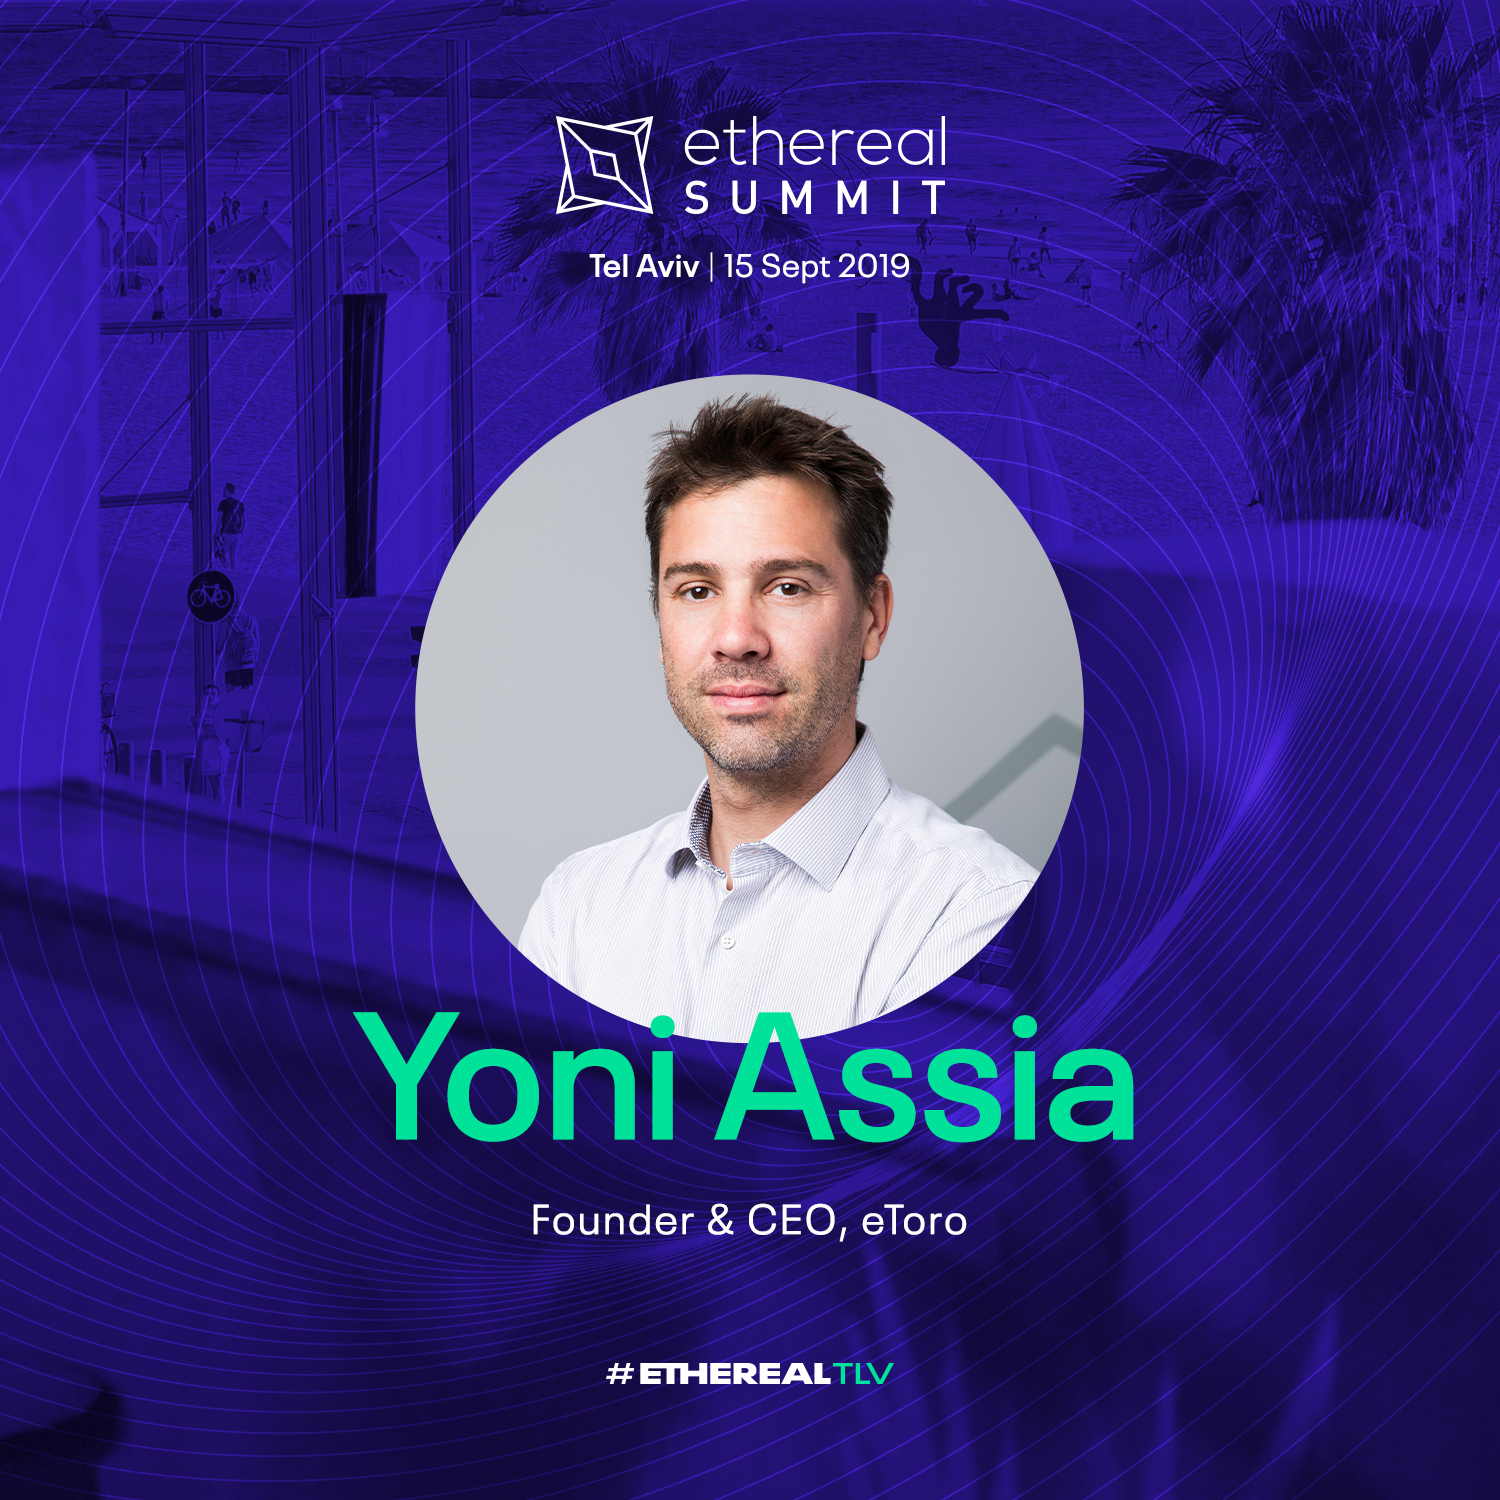 ethereal-tlv-2019-speaker-cards-square-yoni-assia.png